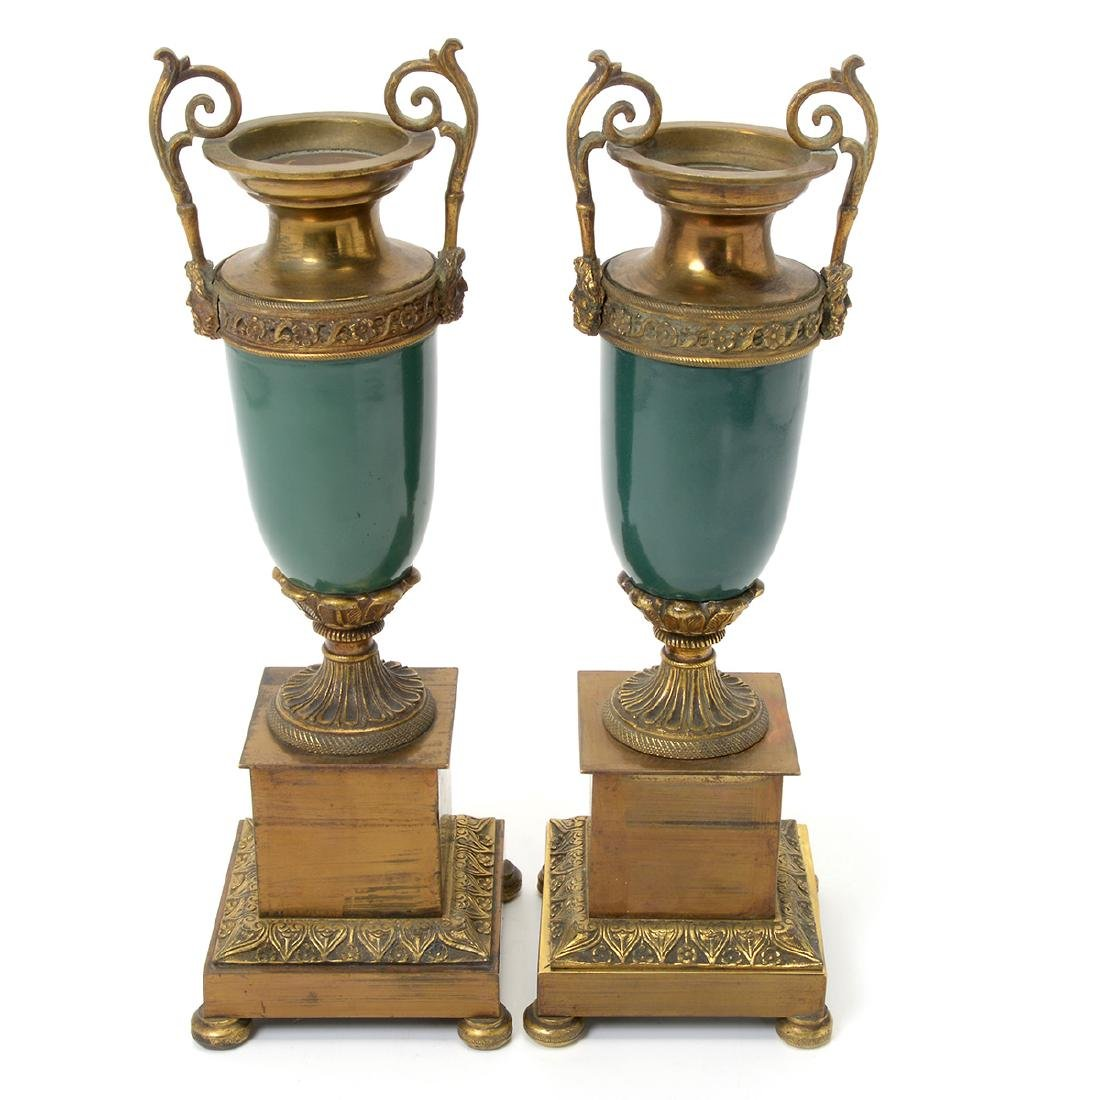 Pair of Sevres Style Gilt Bronze Urns - 2